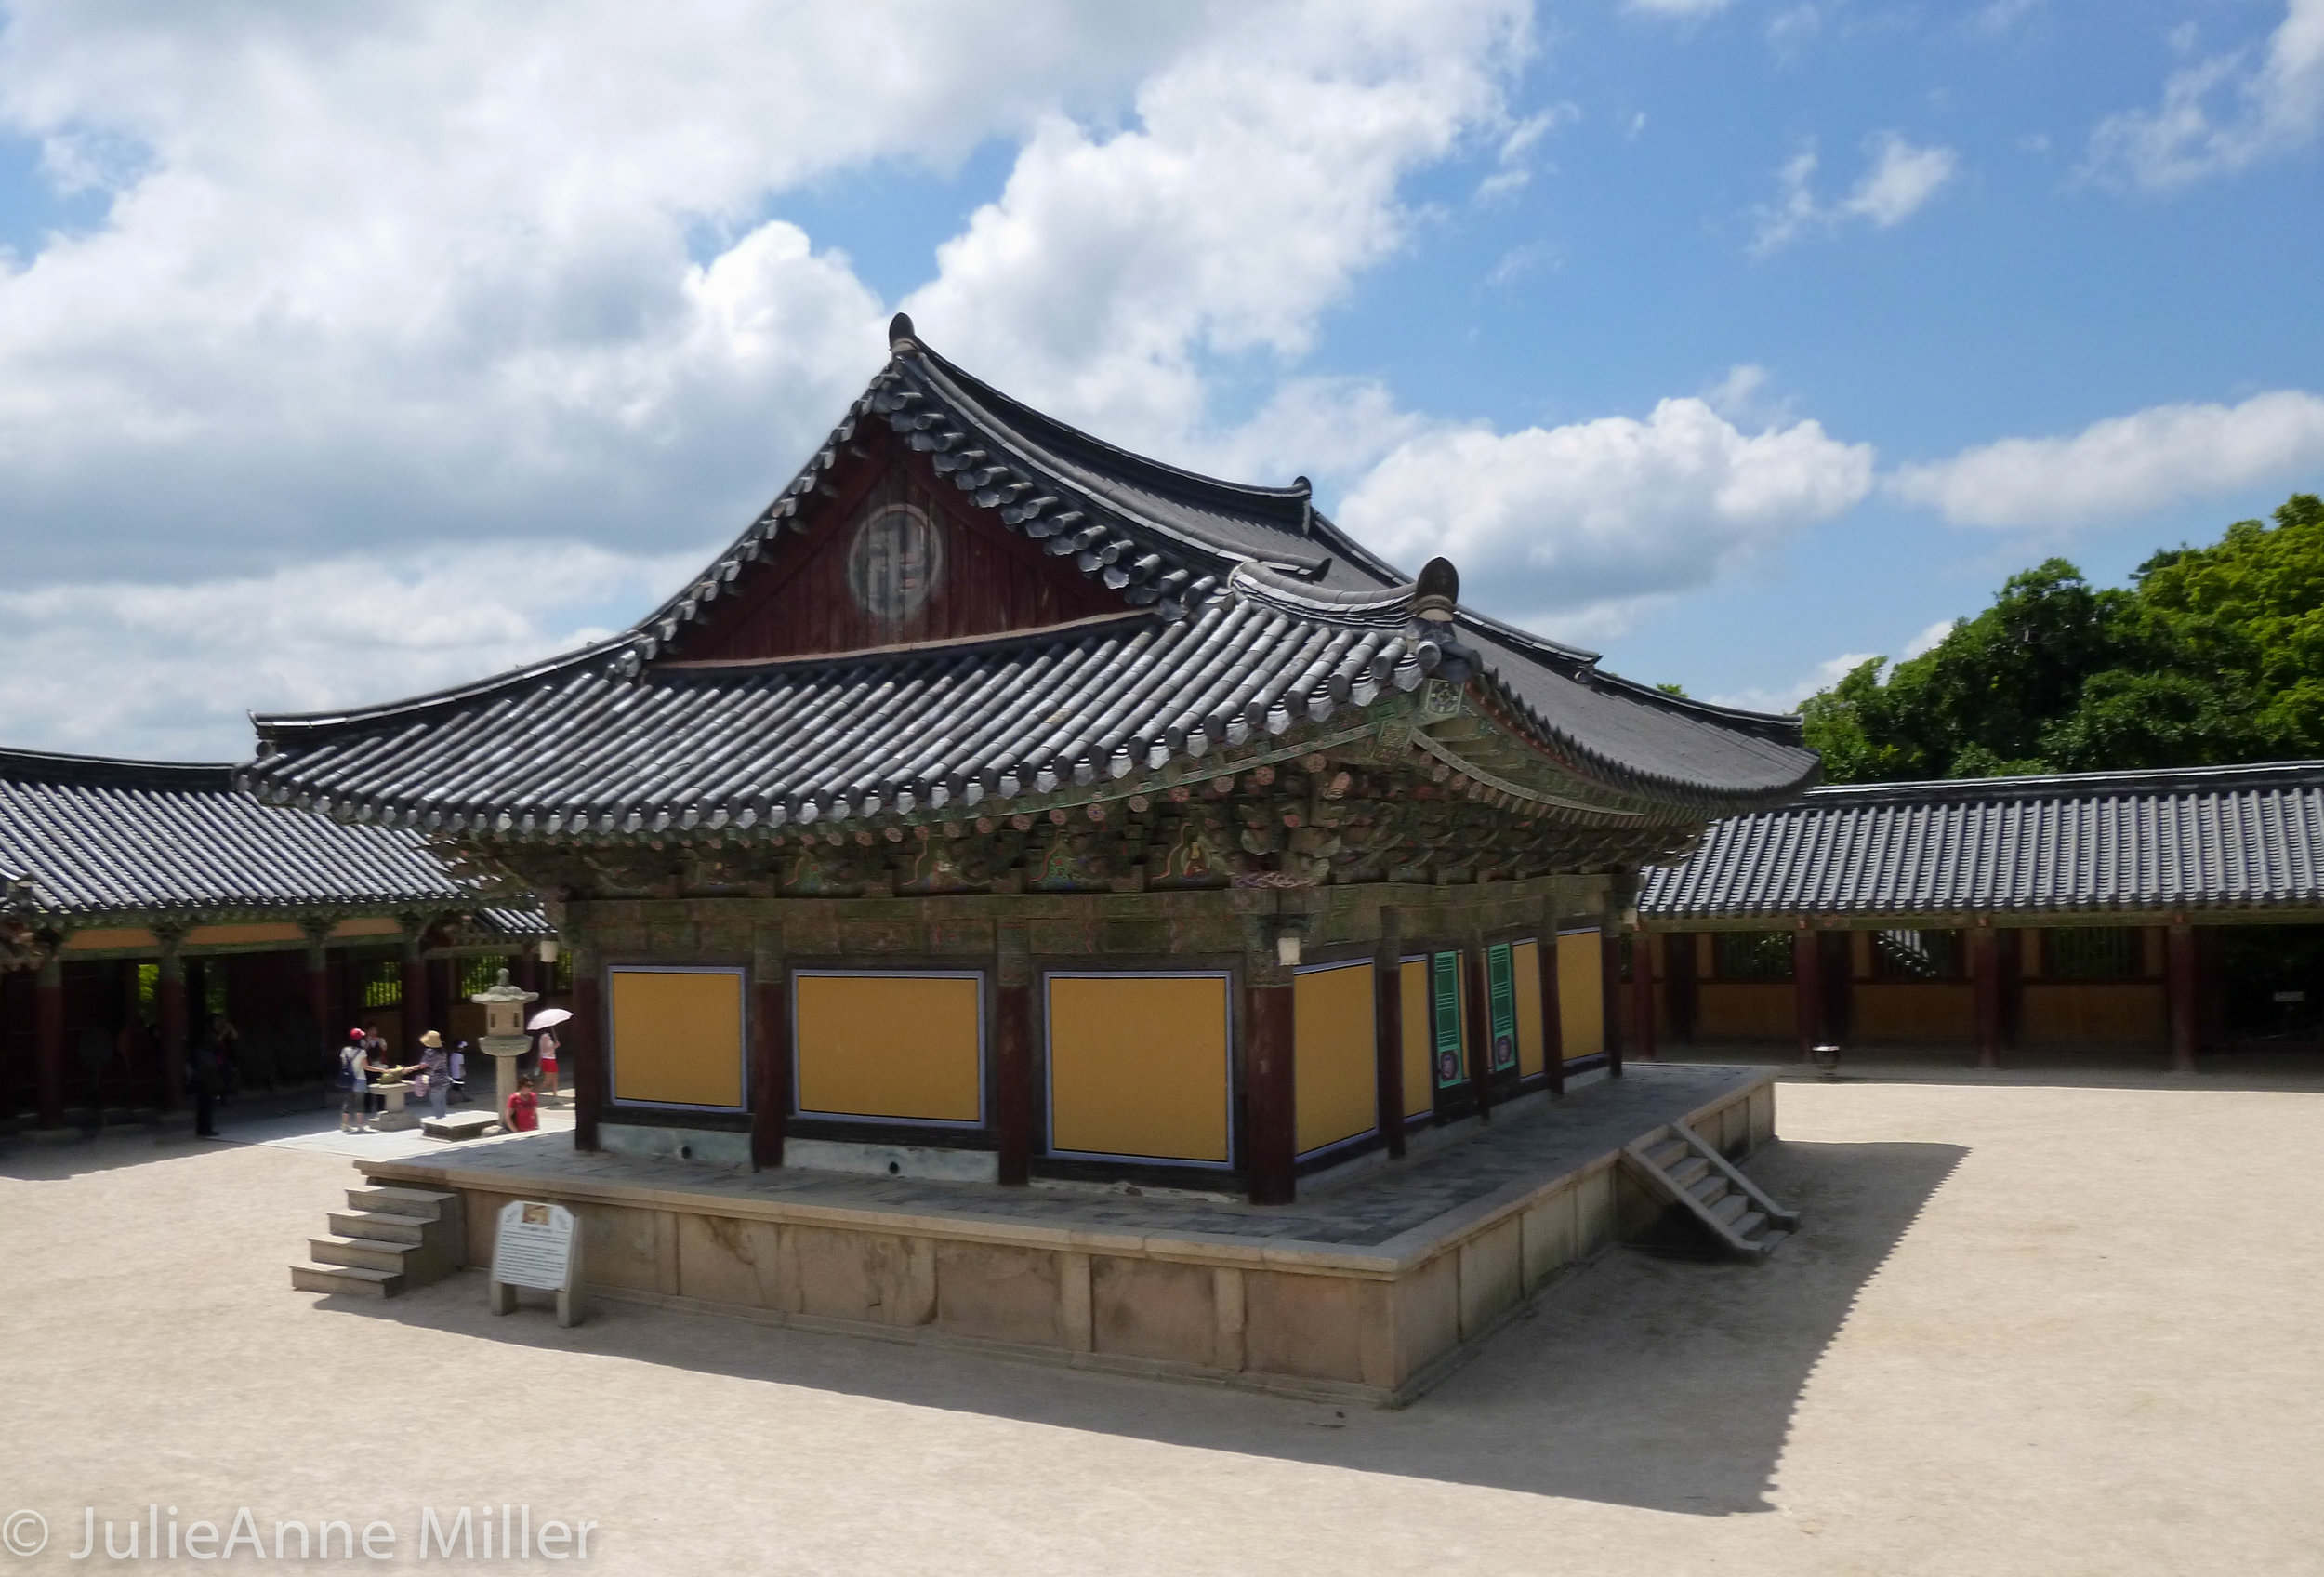 UNESCO South Korea Bulkuksa Temple